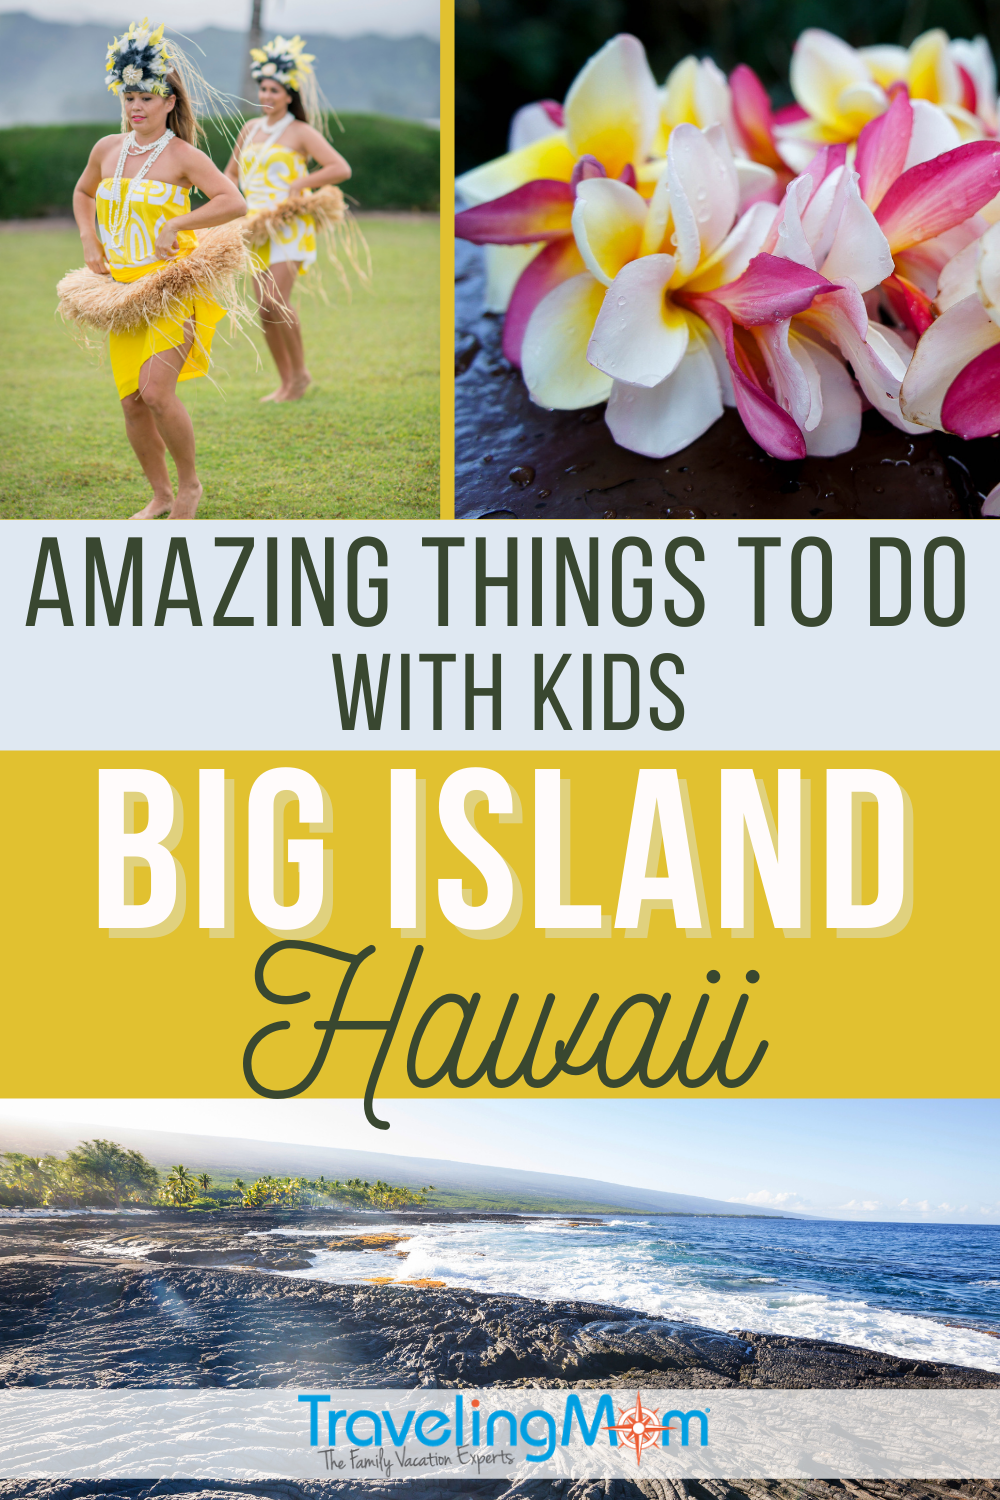 pin image with text amazing things to do with kids big island hawaii top images of hula dancers and leis, bottom image overhead view of ocean front